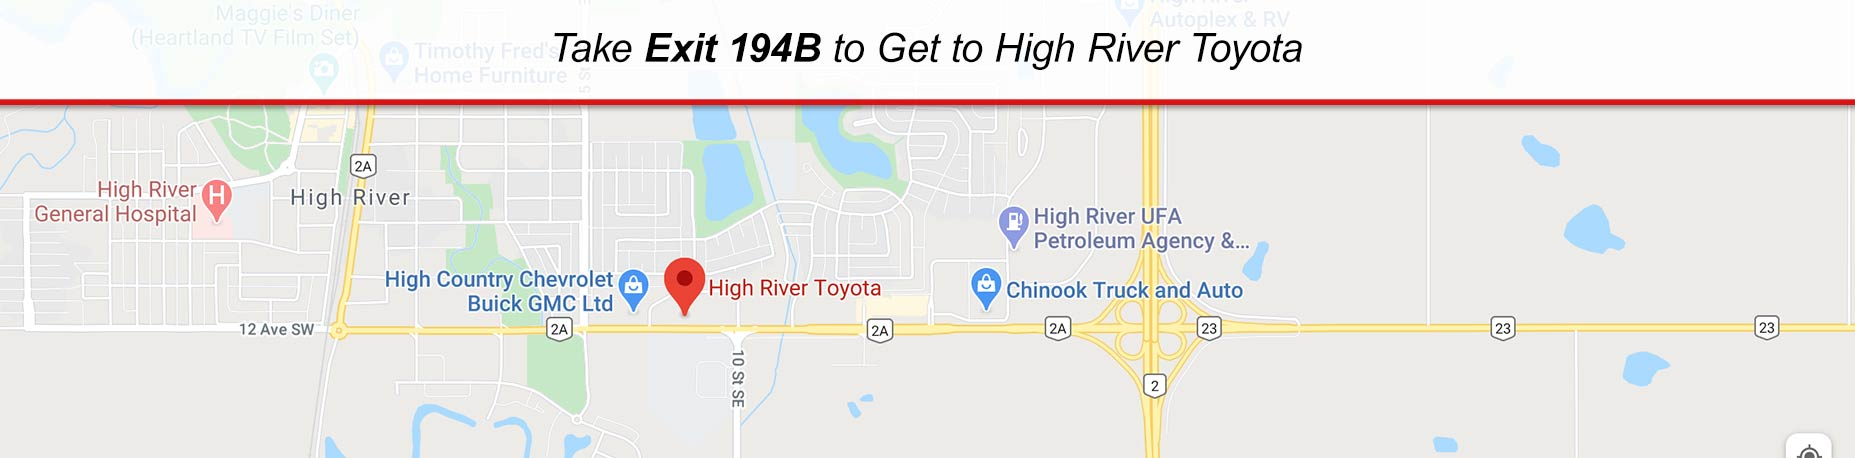 HighRiverToyota-Map-1855x458-02.jpg